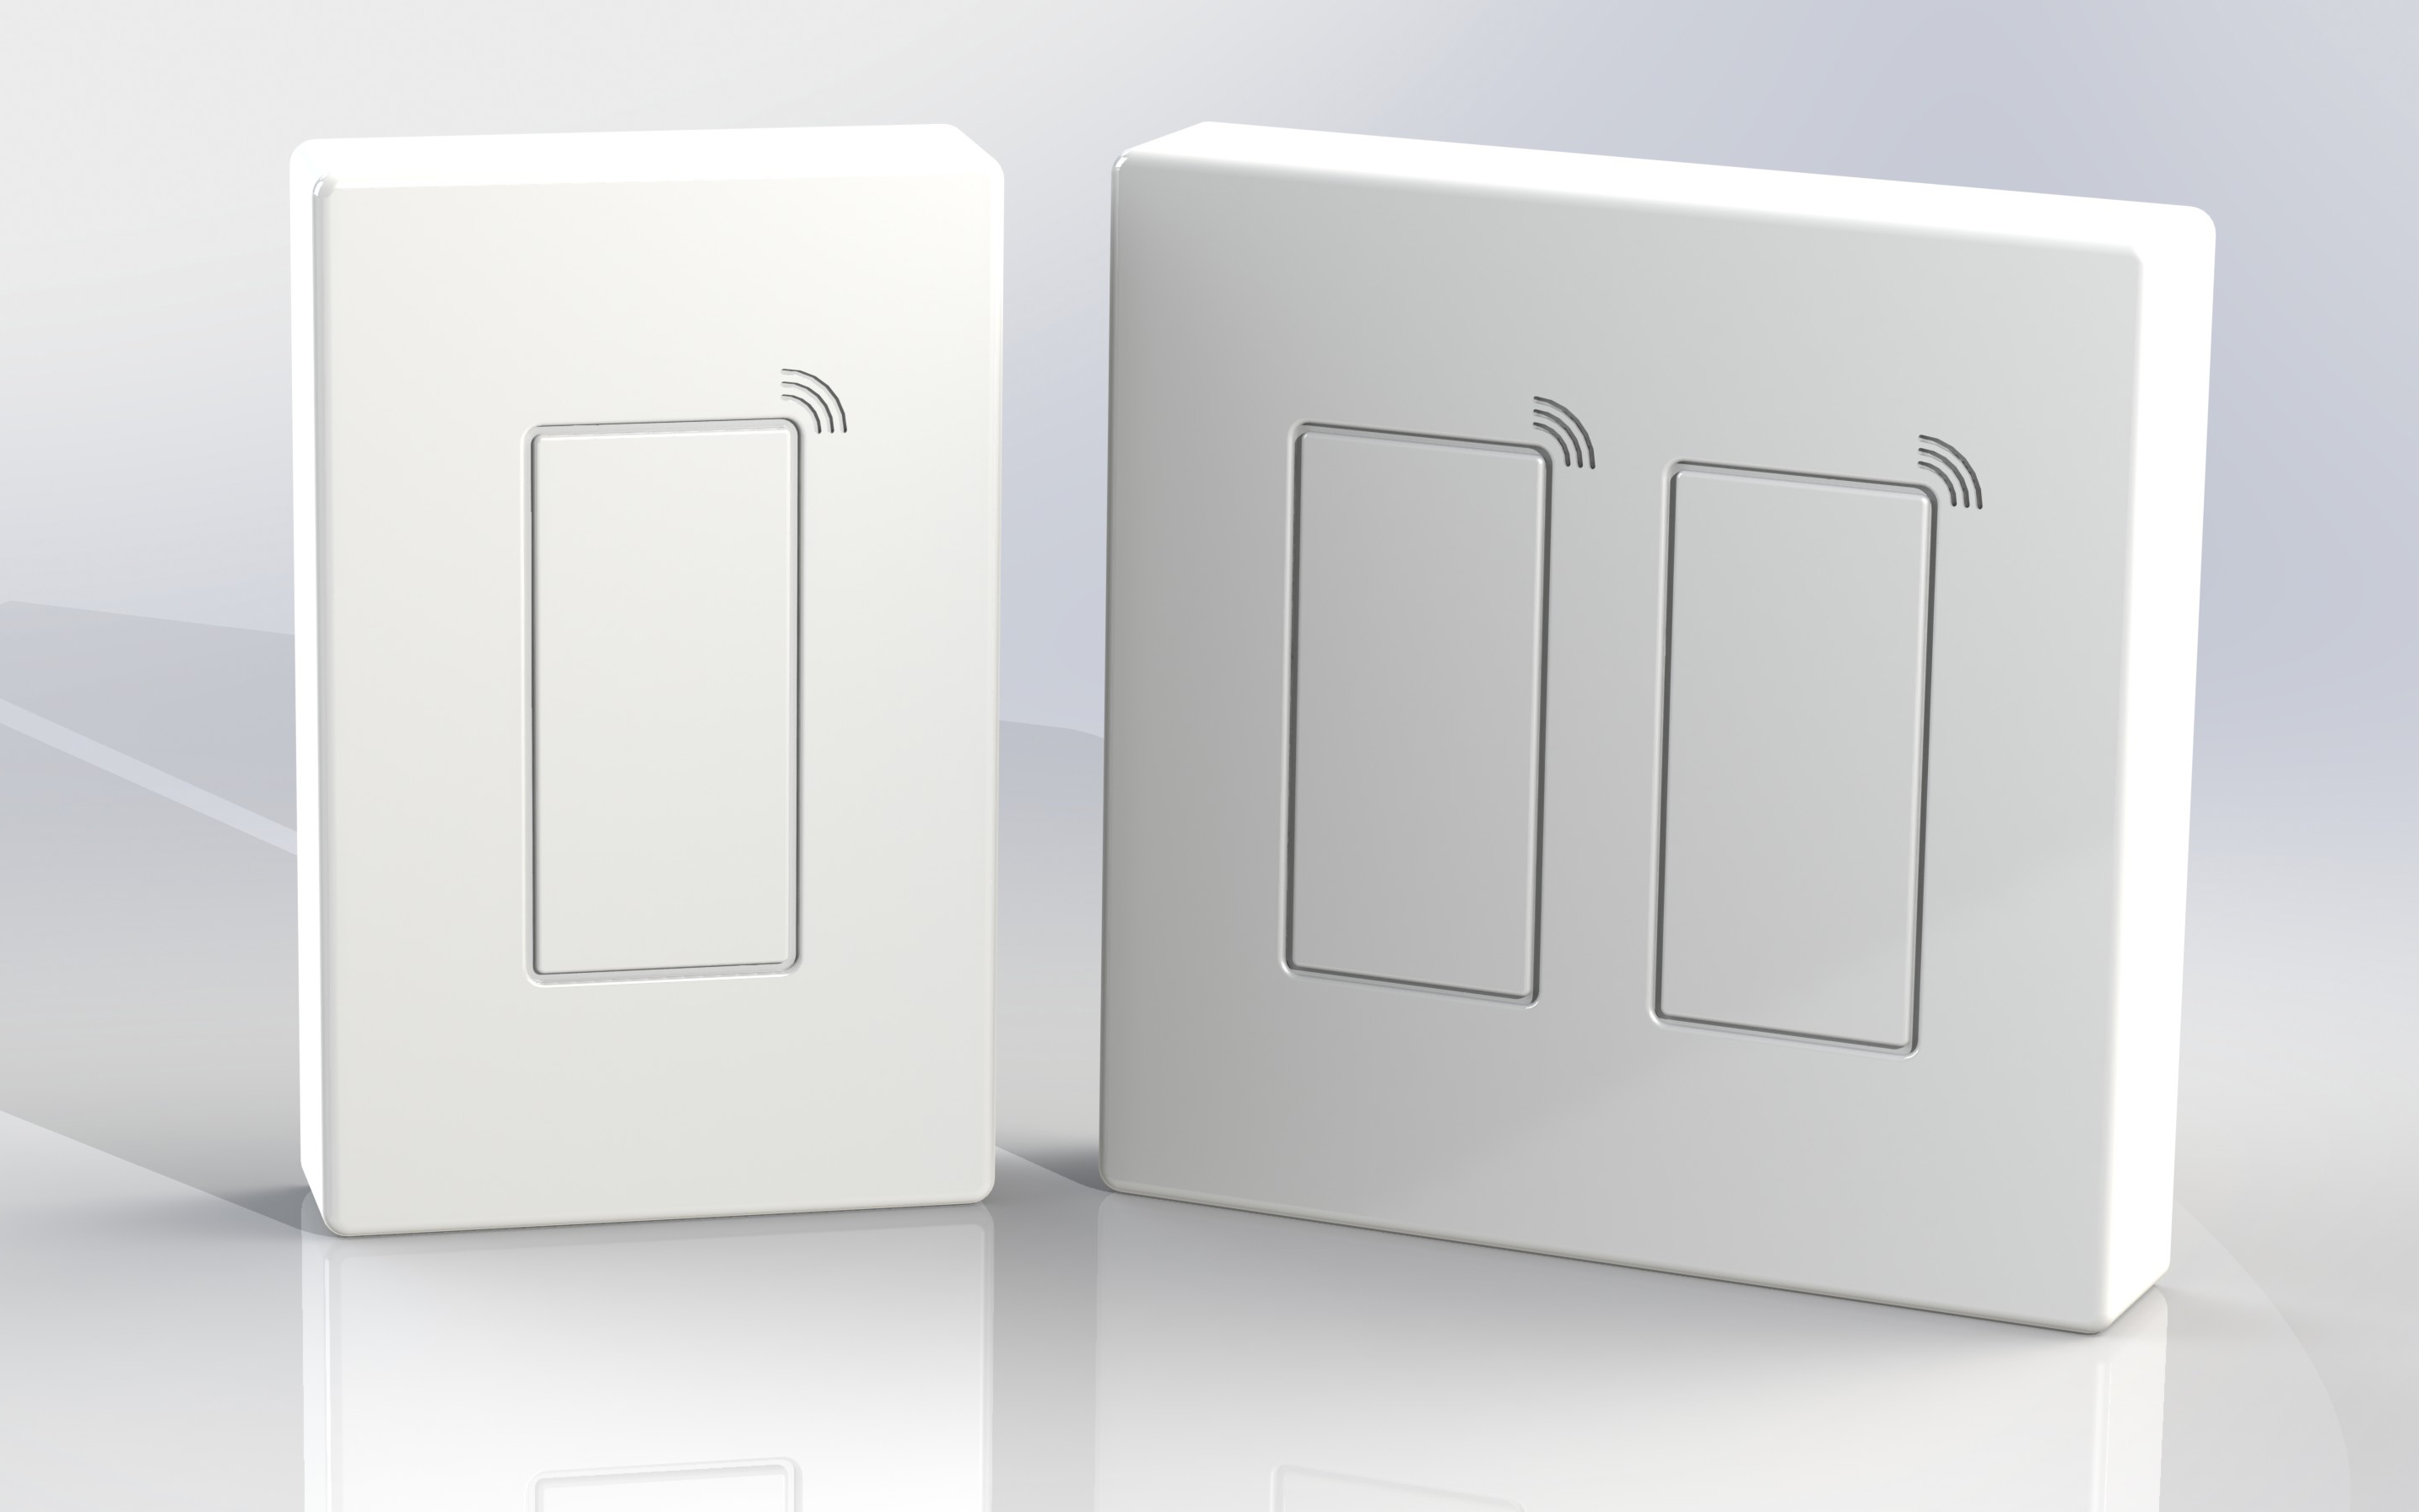 AirON - Rethinking How a Light Switch Should Work | Indiegogo